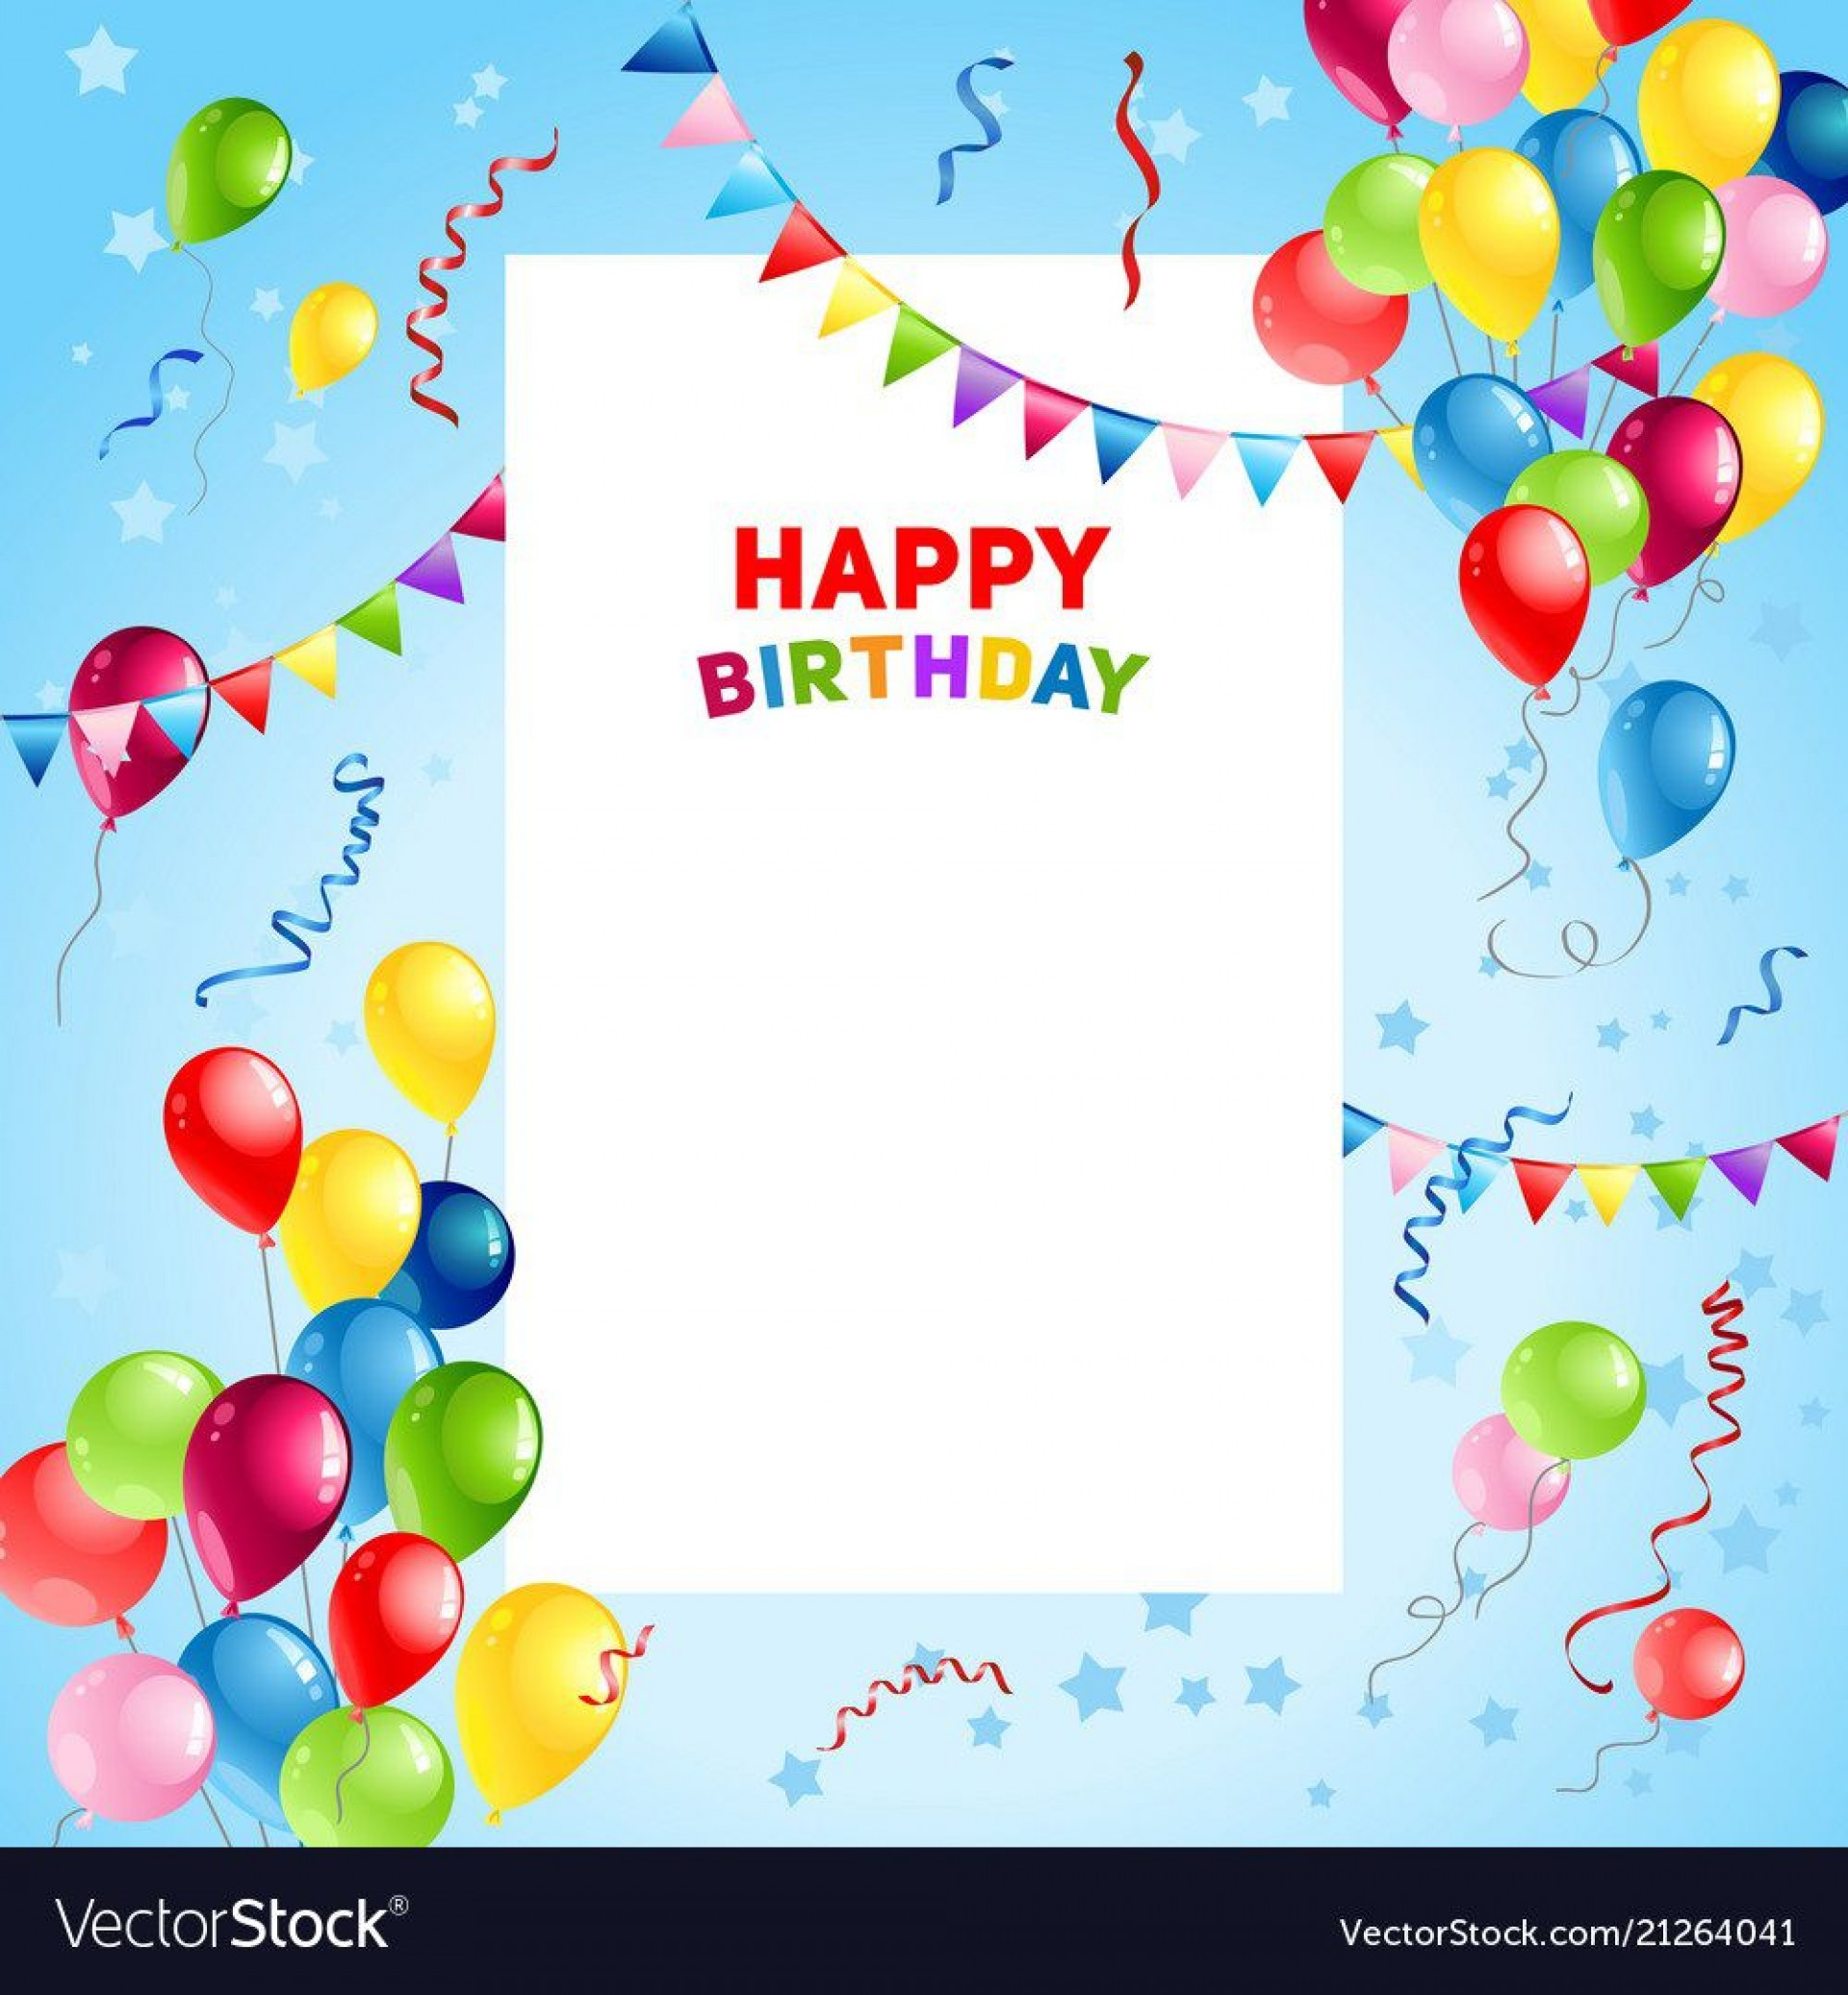 005 Fearsome Birthday Card Template Free Concept  Invitation Photoshop Download Word1920